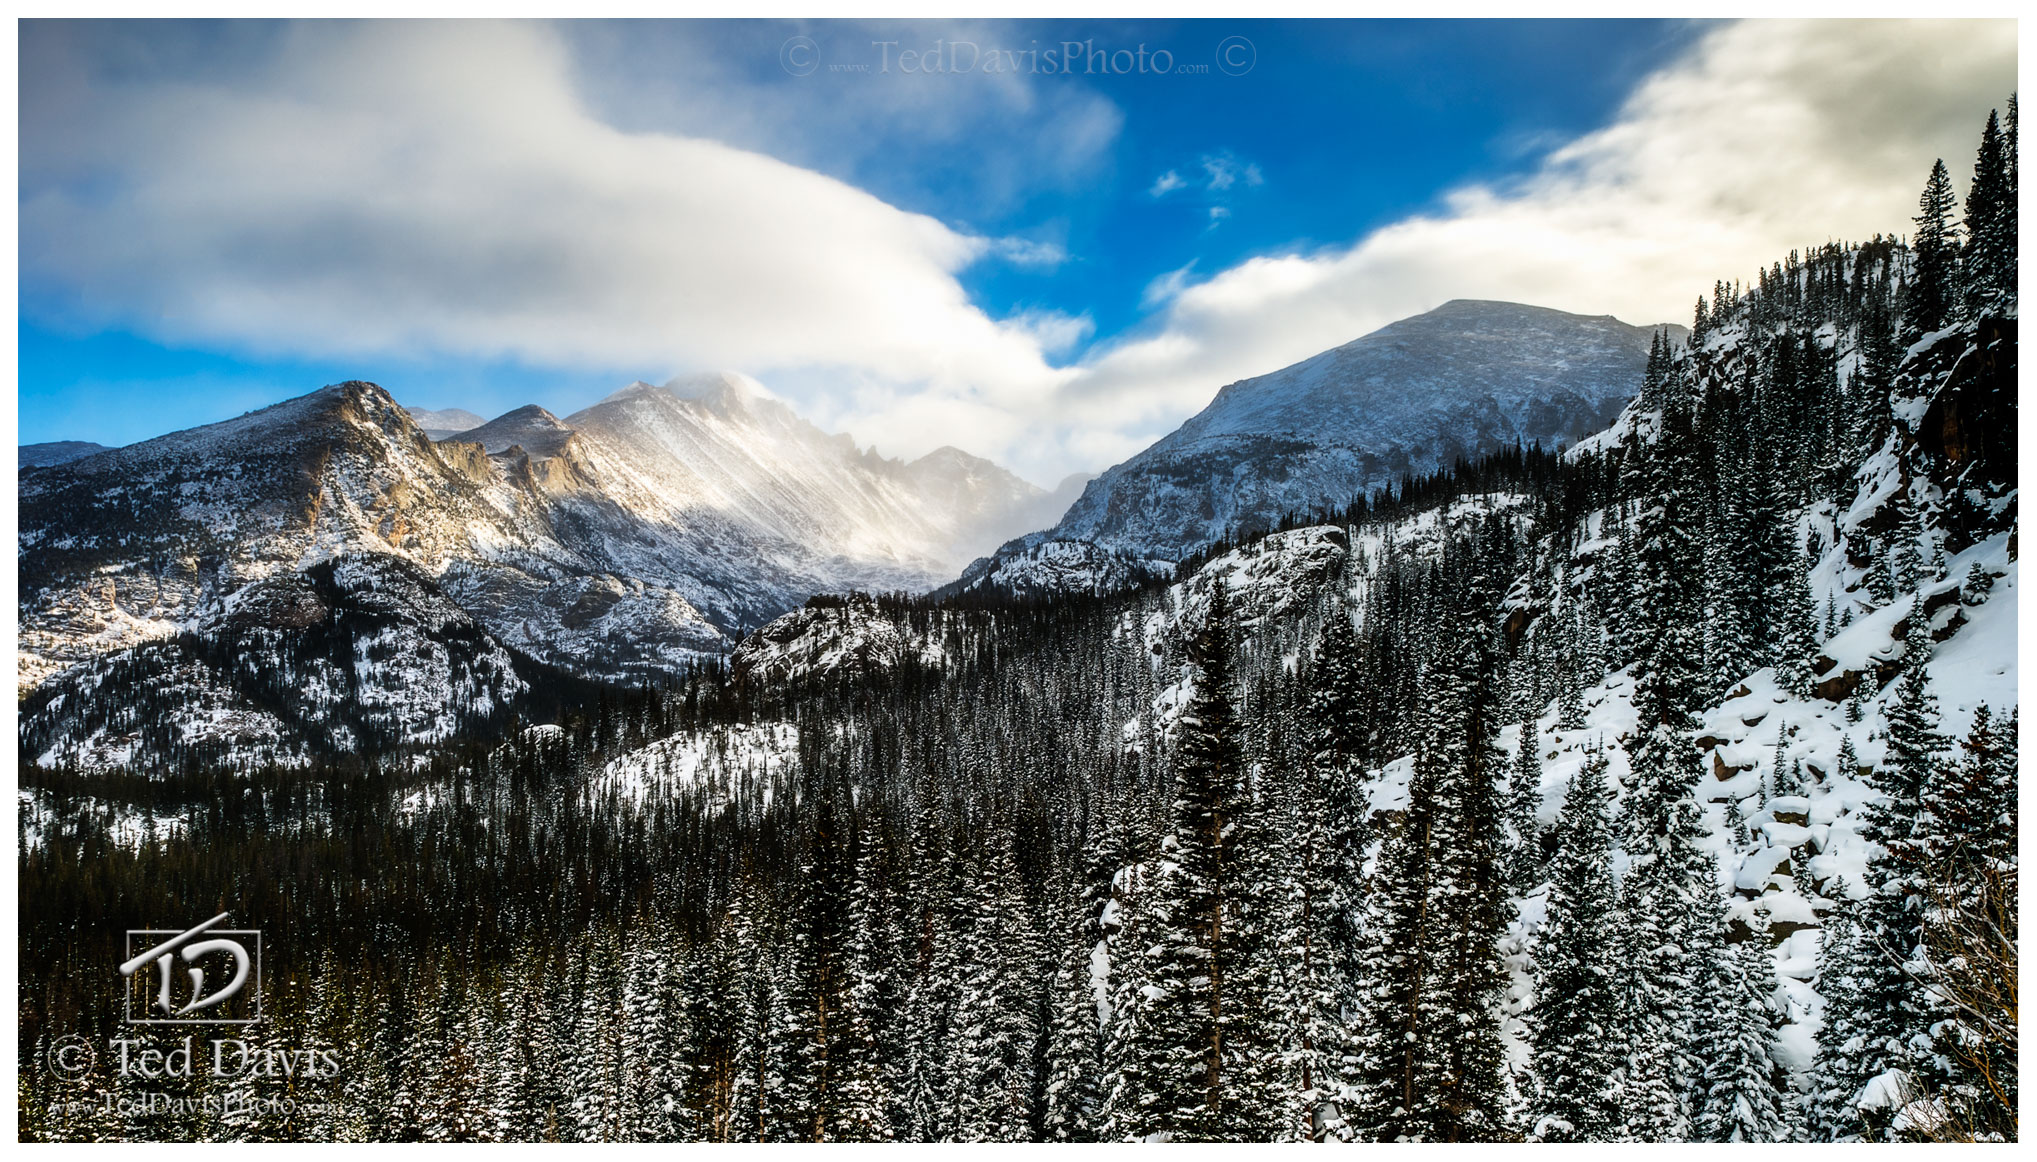 rocky mountain, national park, estes, colorado, continental, divide, mountain, intense, peaks, lakes, beauty, dusted, magnificent, photo